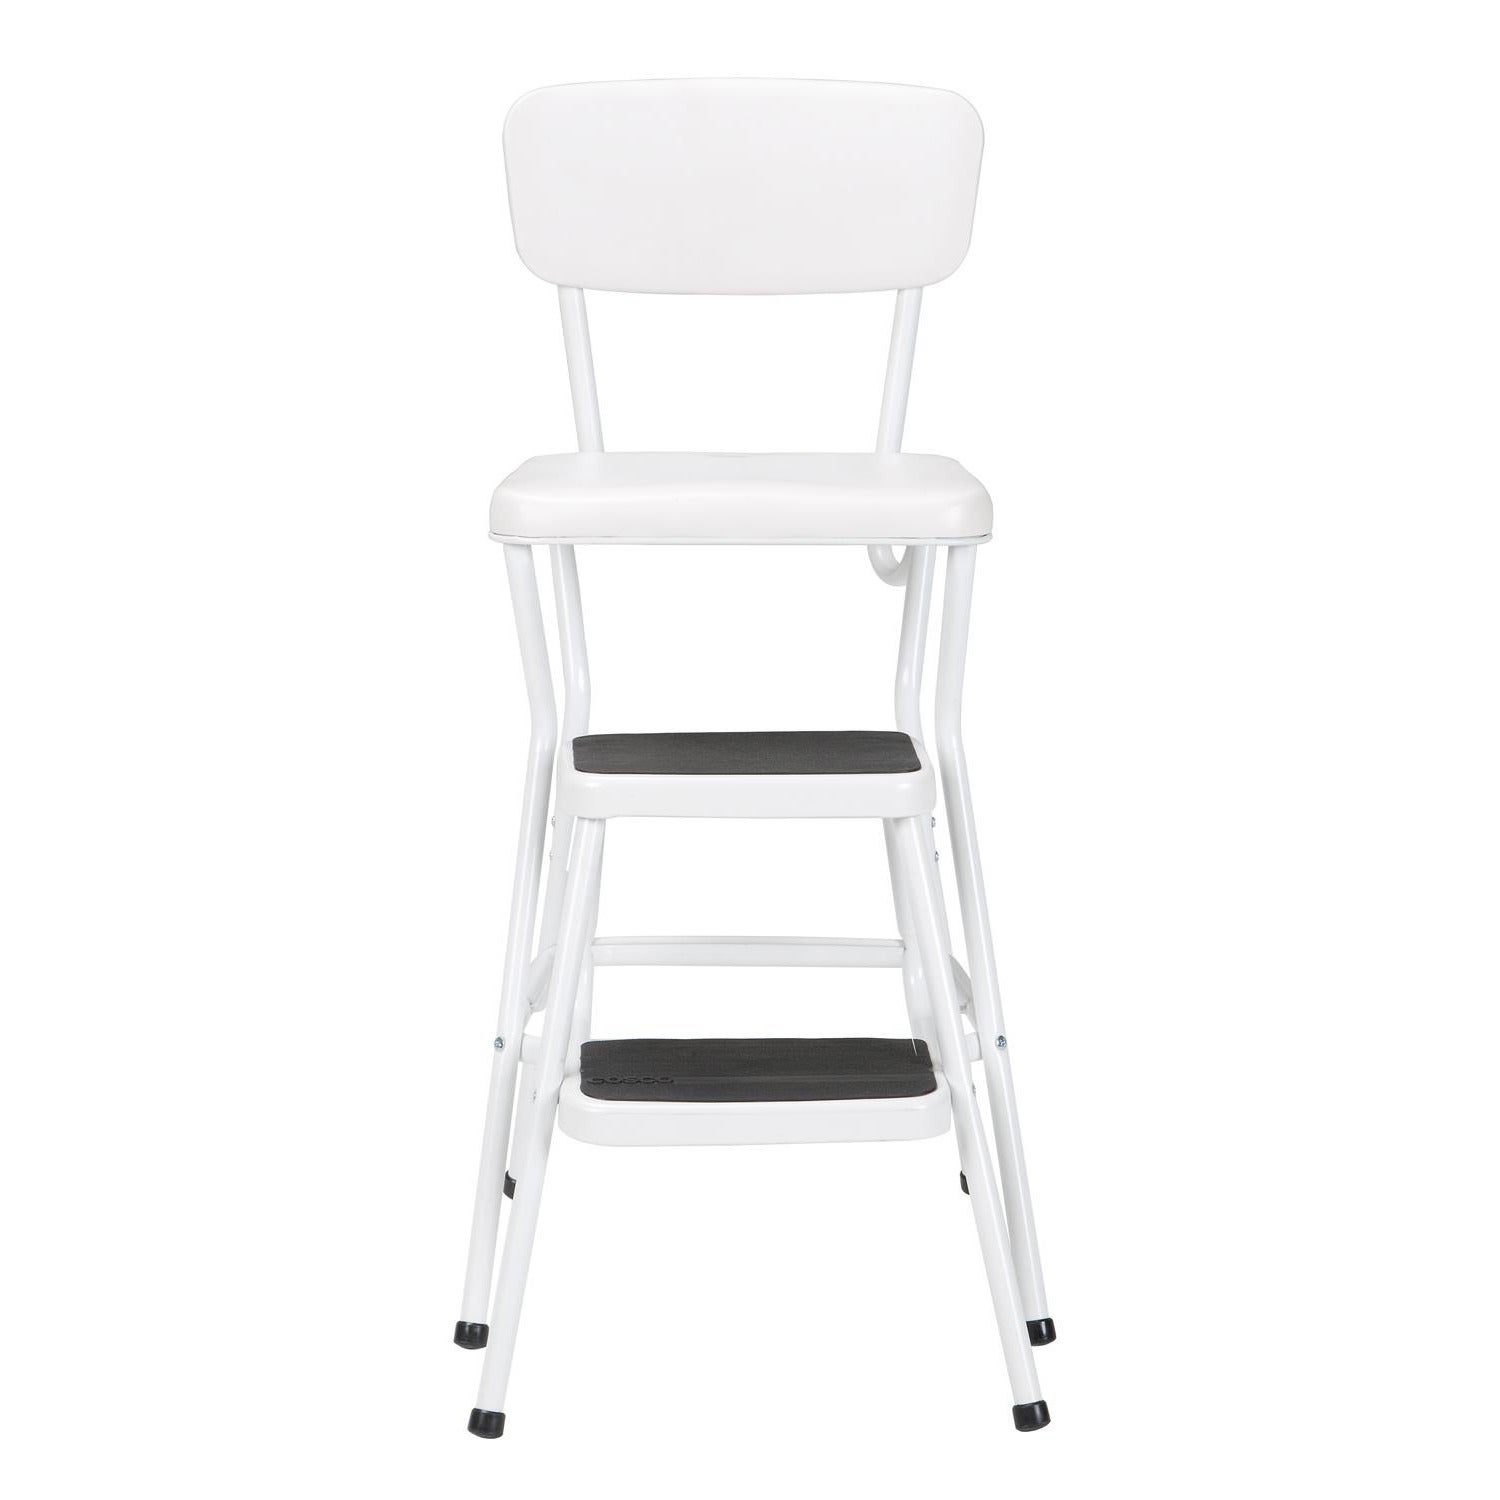 Shop Cosco Retro White Counter Chair/Step Stool   Free Shipping Today    Overstock.com   8026499